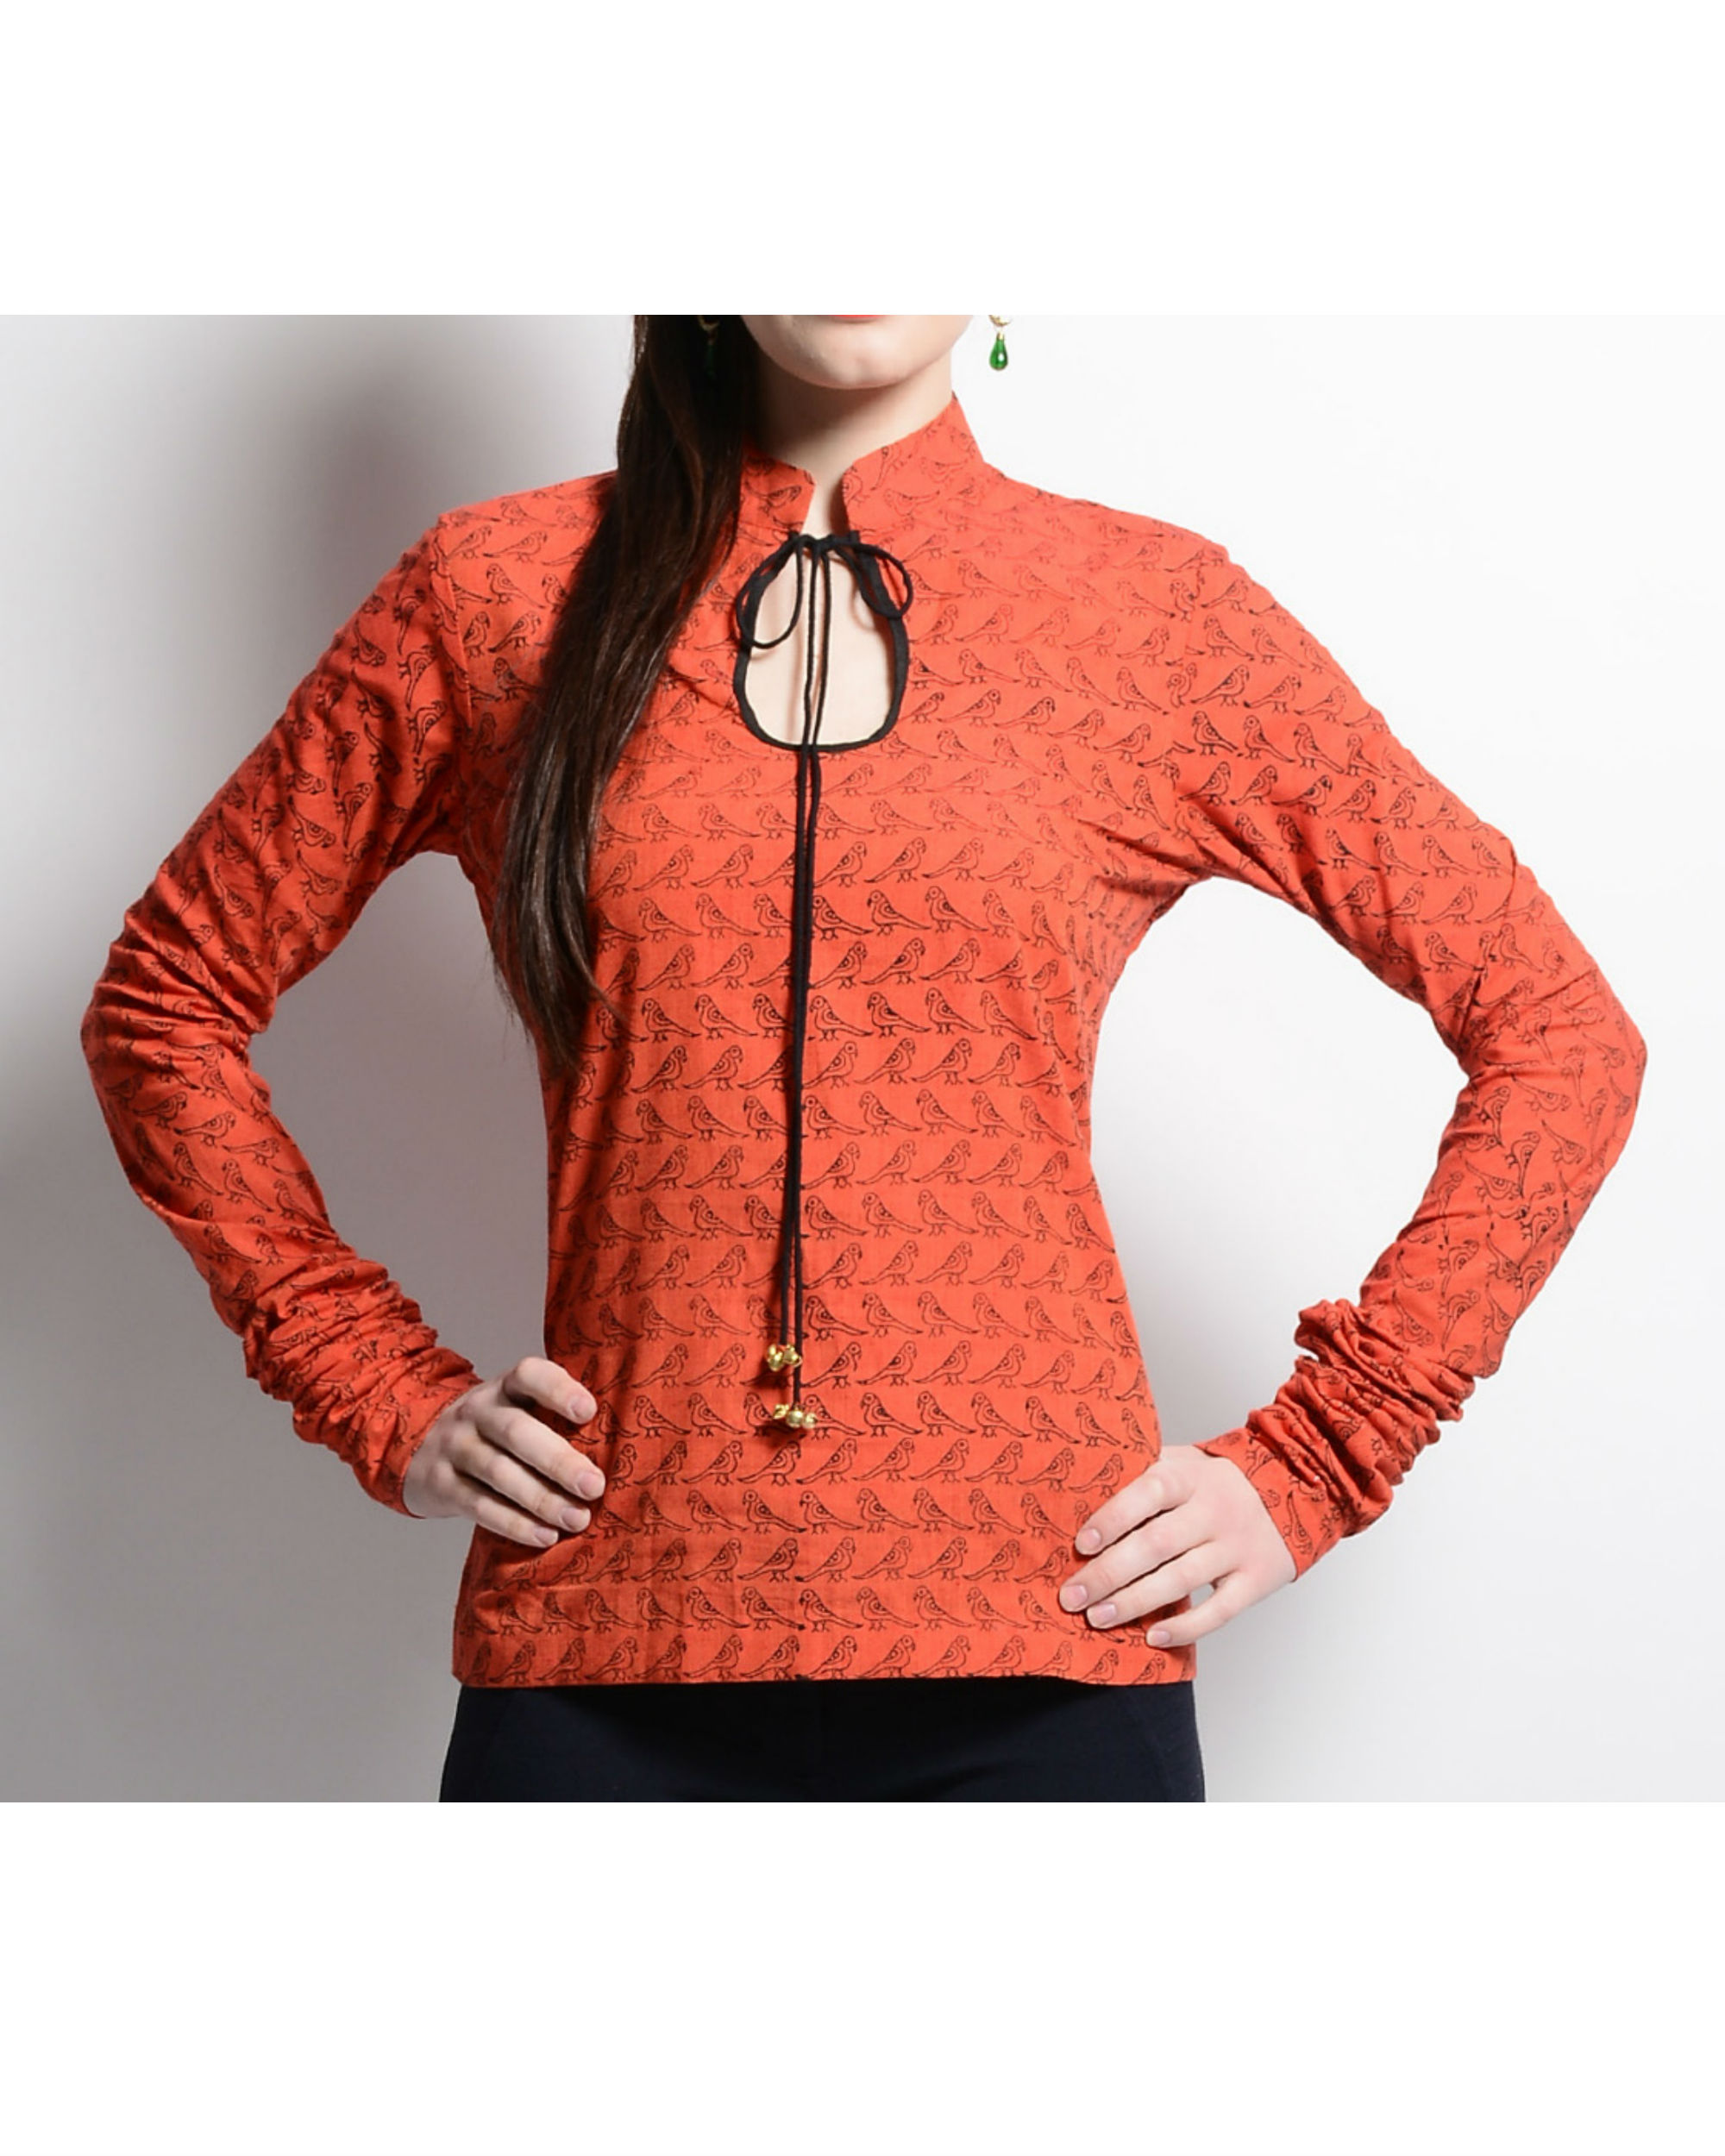 Orange manglagiri top